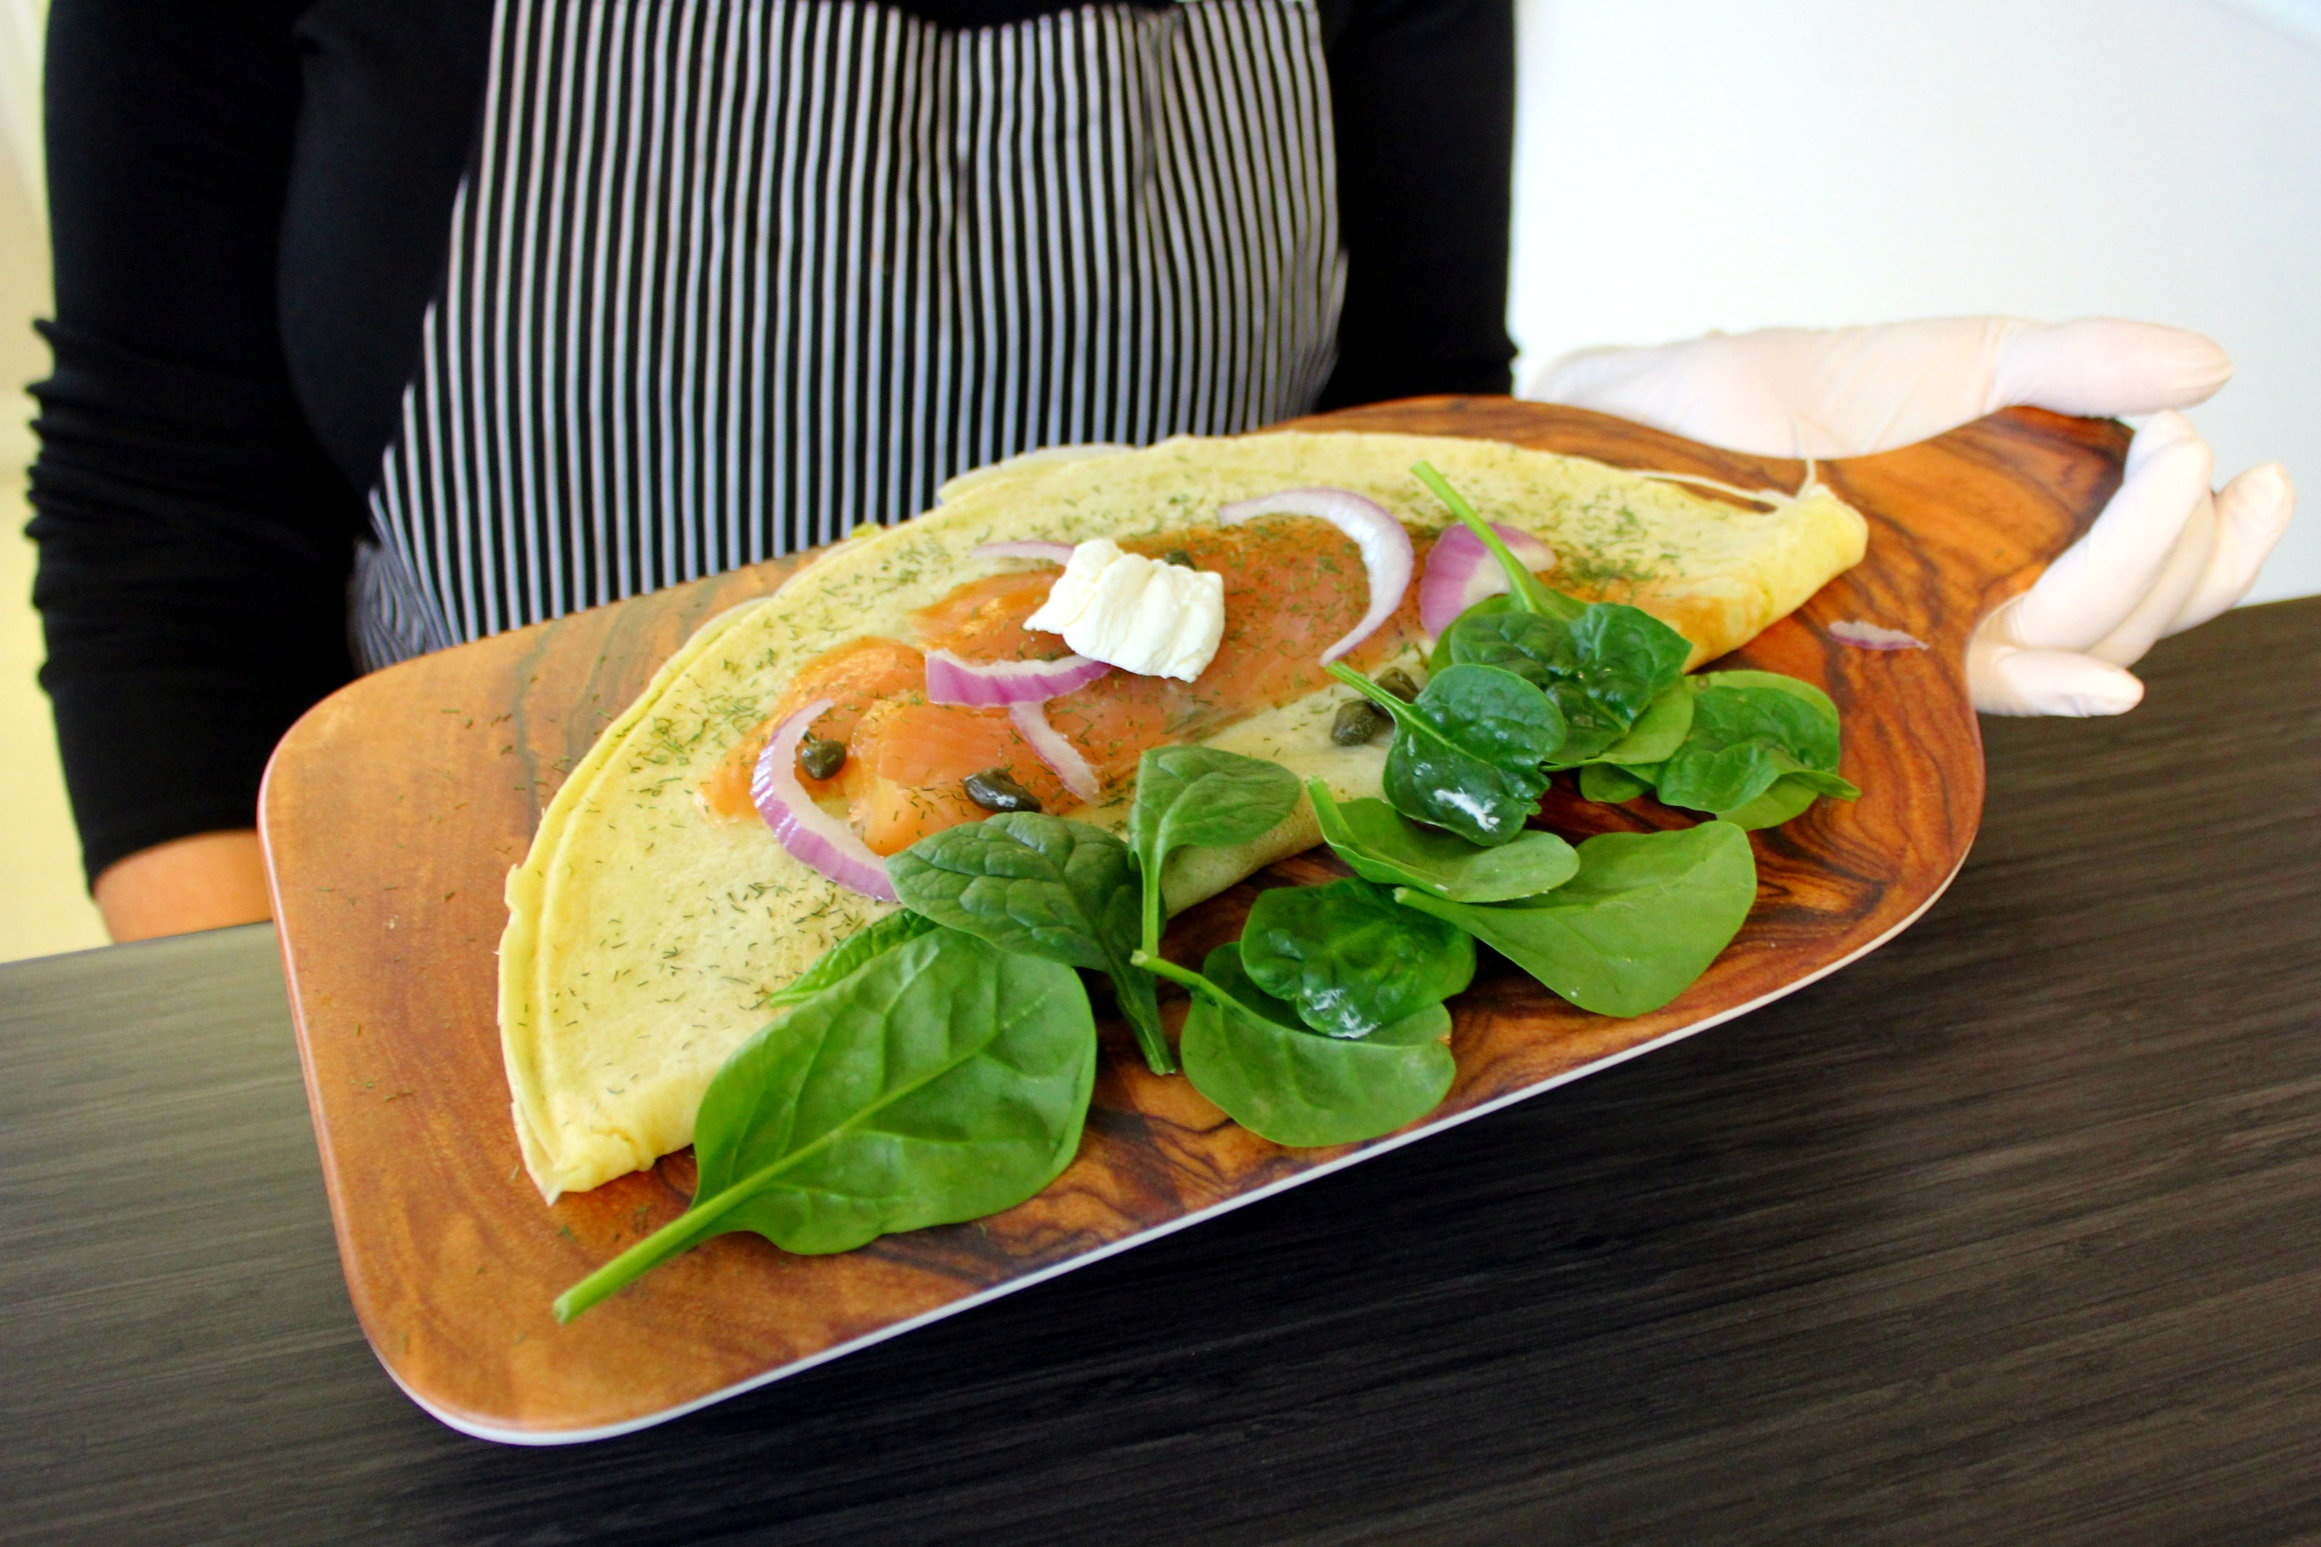 Join us for lunch - Fresh Smoothies, Juices, Wraps & Crêpes Monday to Saturday, 9 a.m. to 6 p.m.